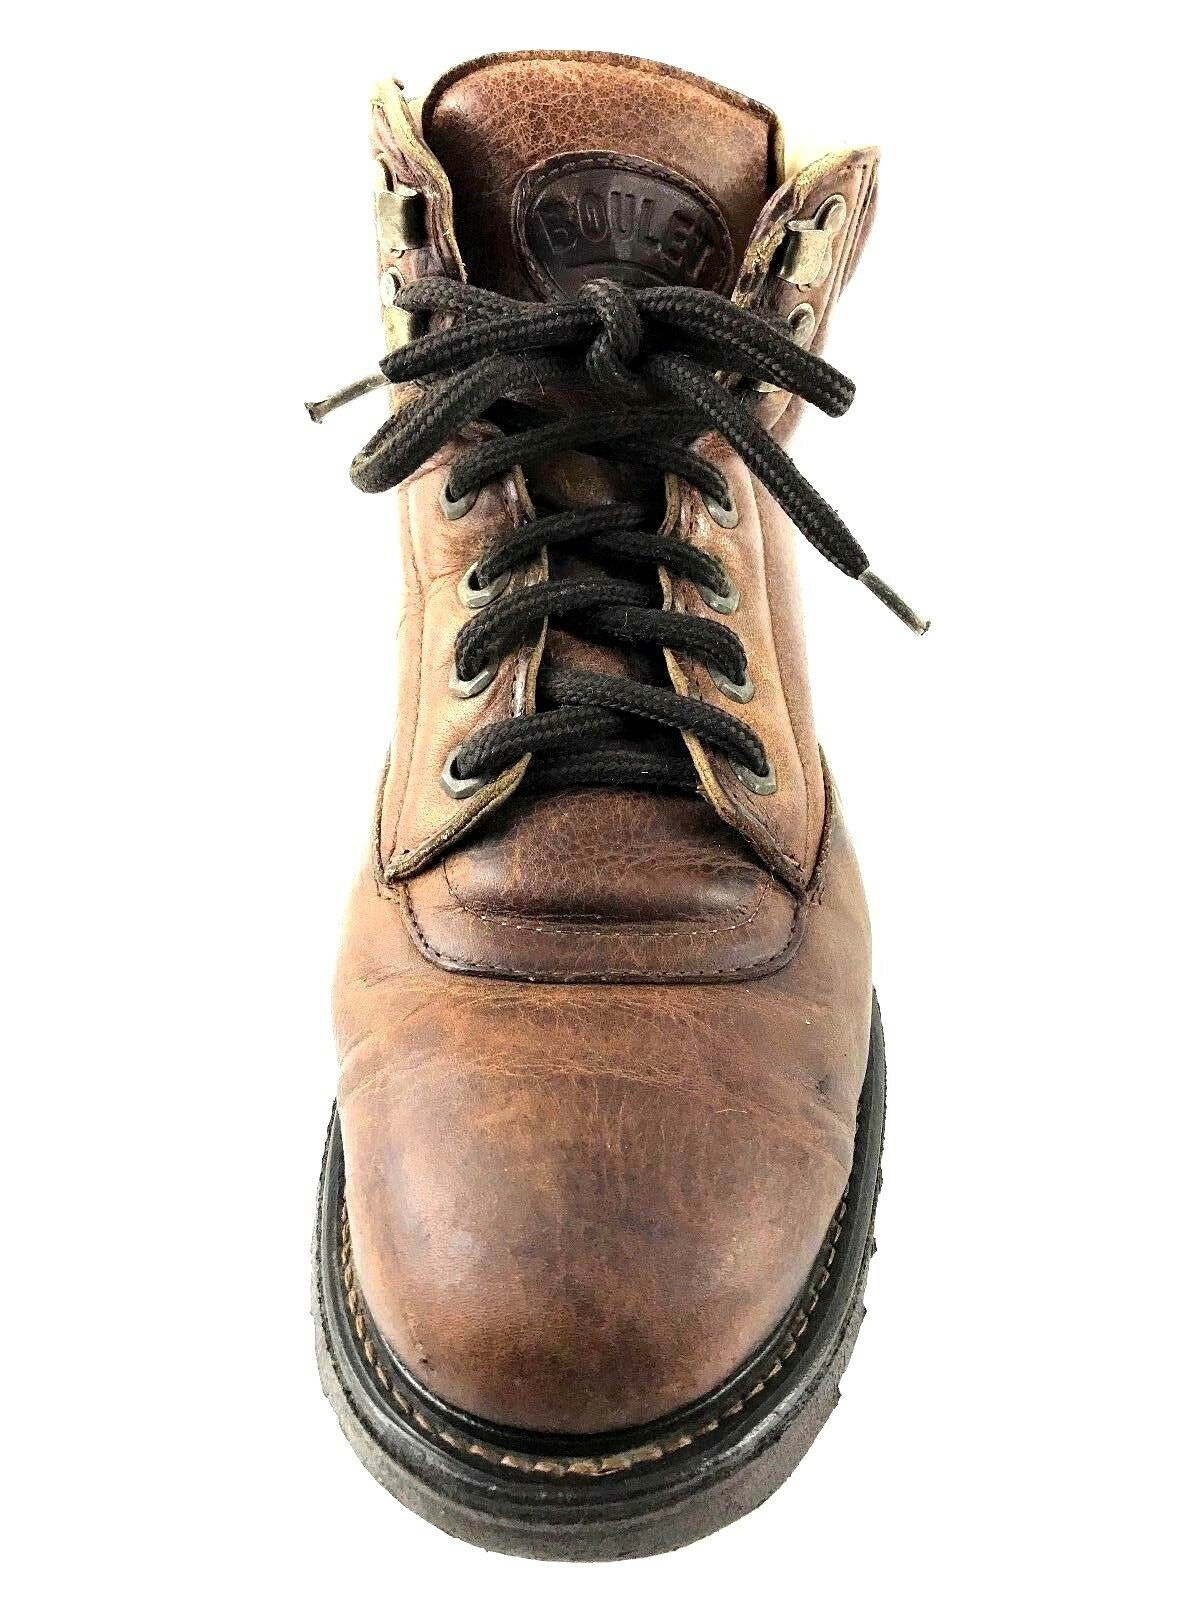 BOULET REAR MEN'S ANKLE BOOT BROWN SIZE US.8